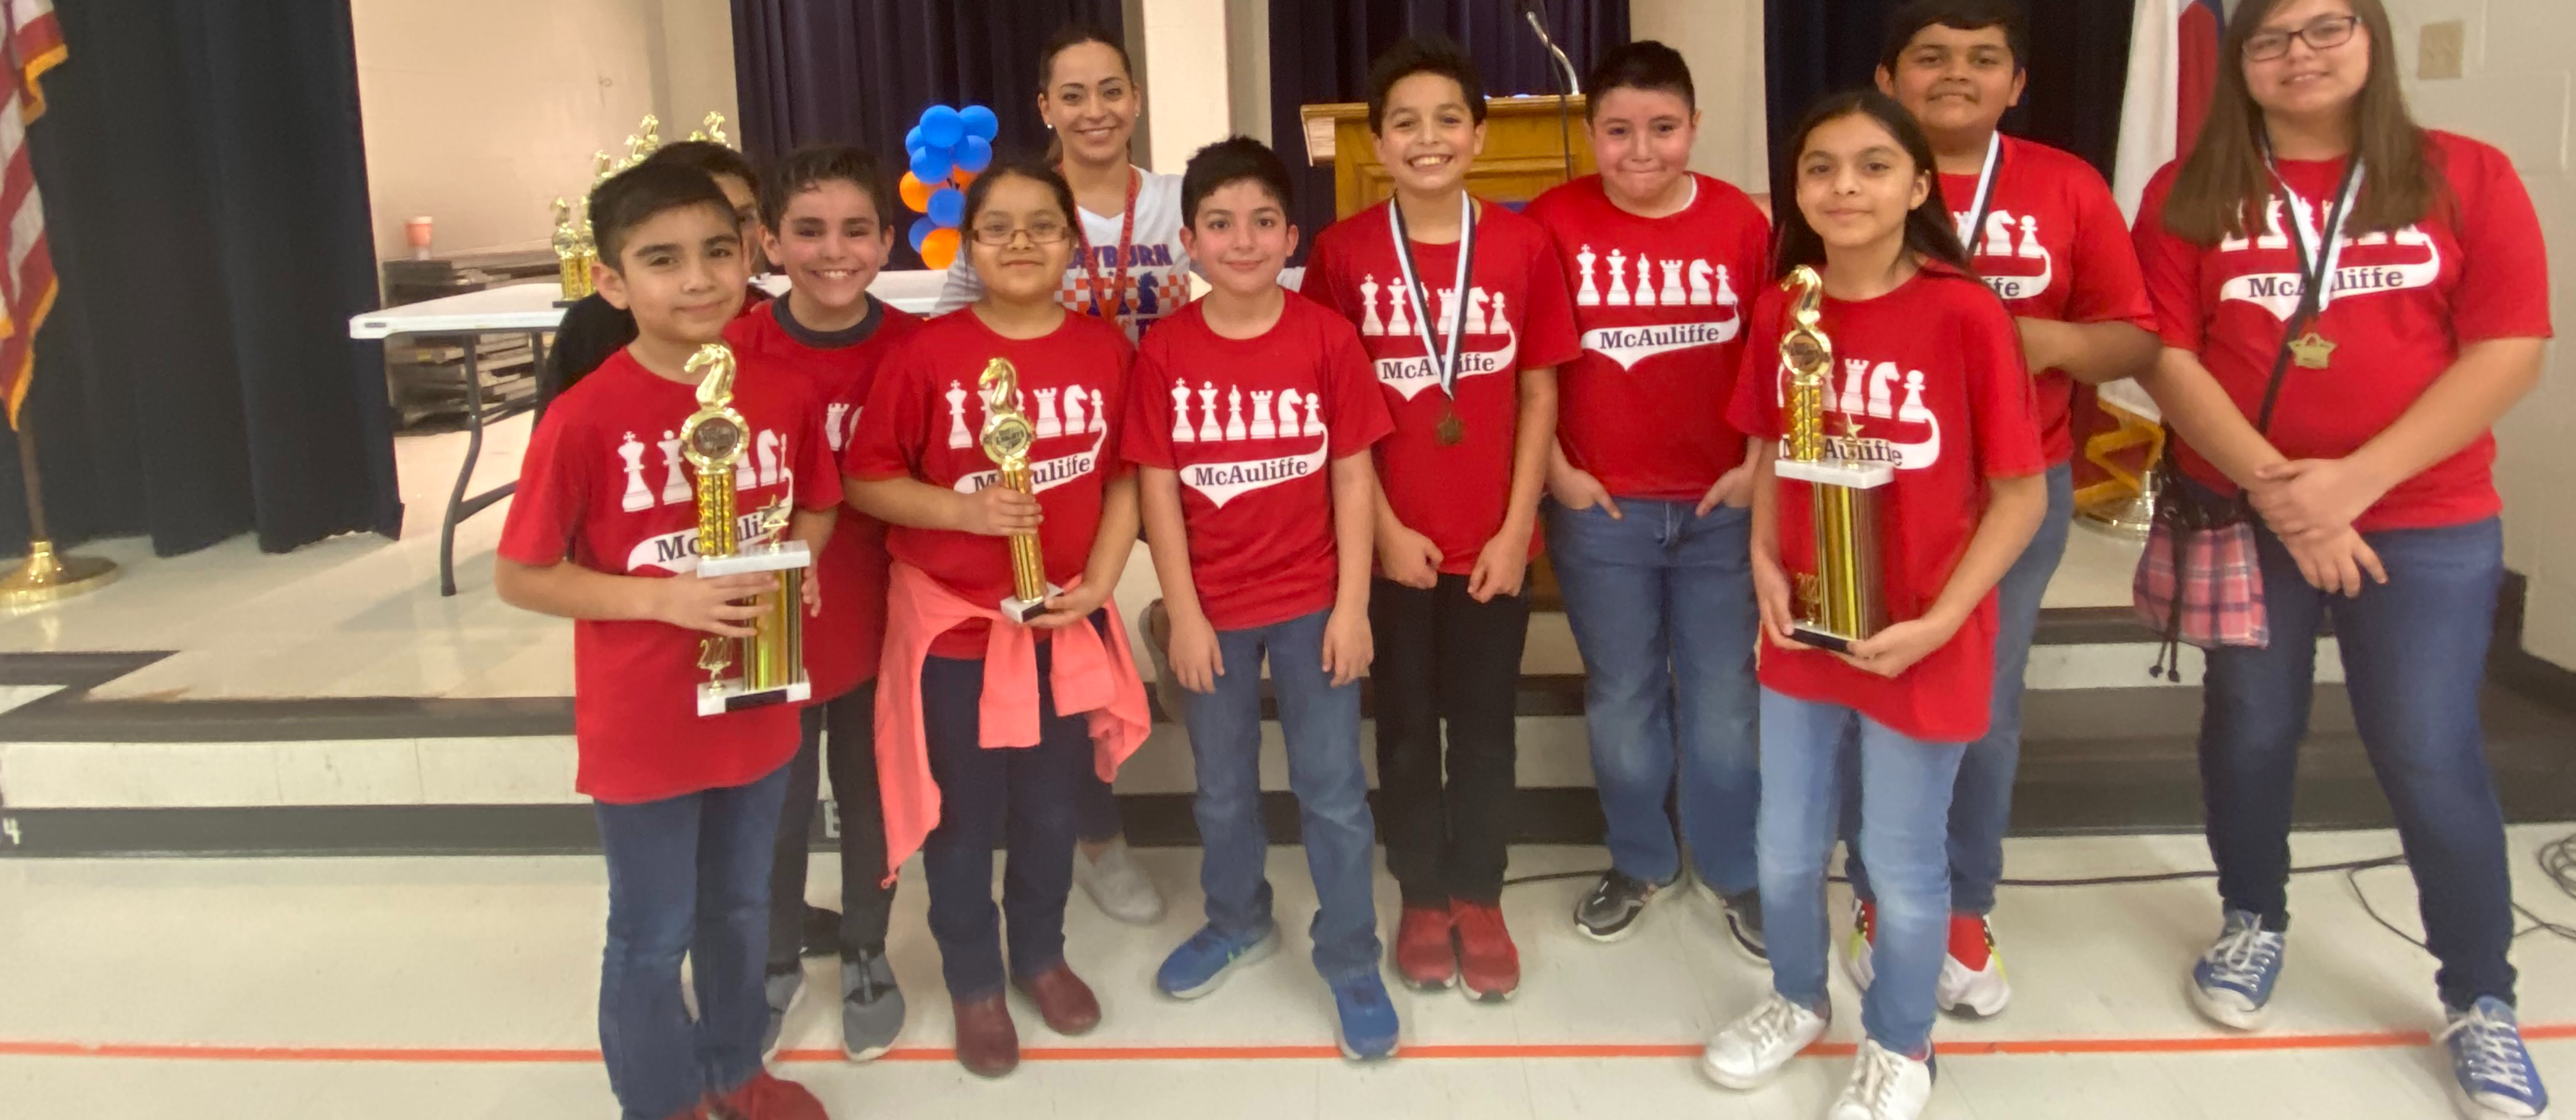 chess team with trophies